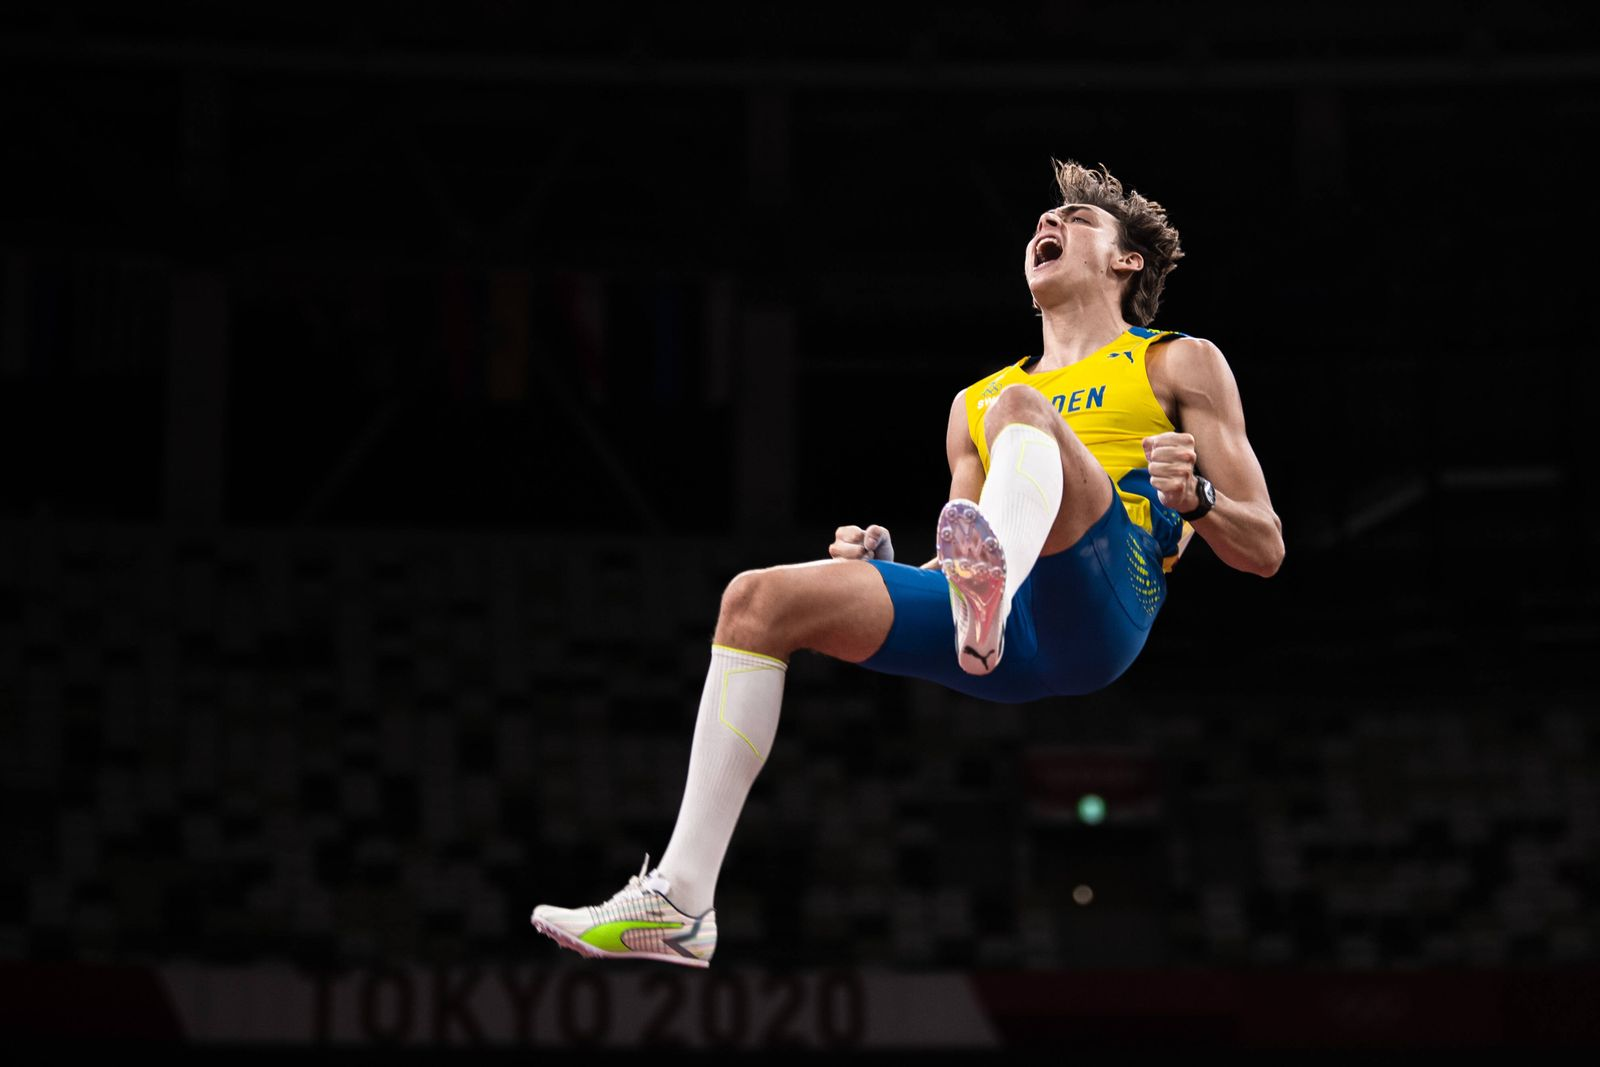 """210803 Armand Duplantis of Sweden celebrates when competing in men""""!s pole vault final during day 11 of the Tokyo 2020 O"""